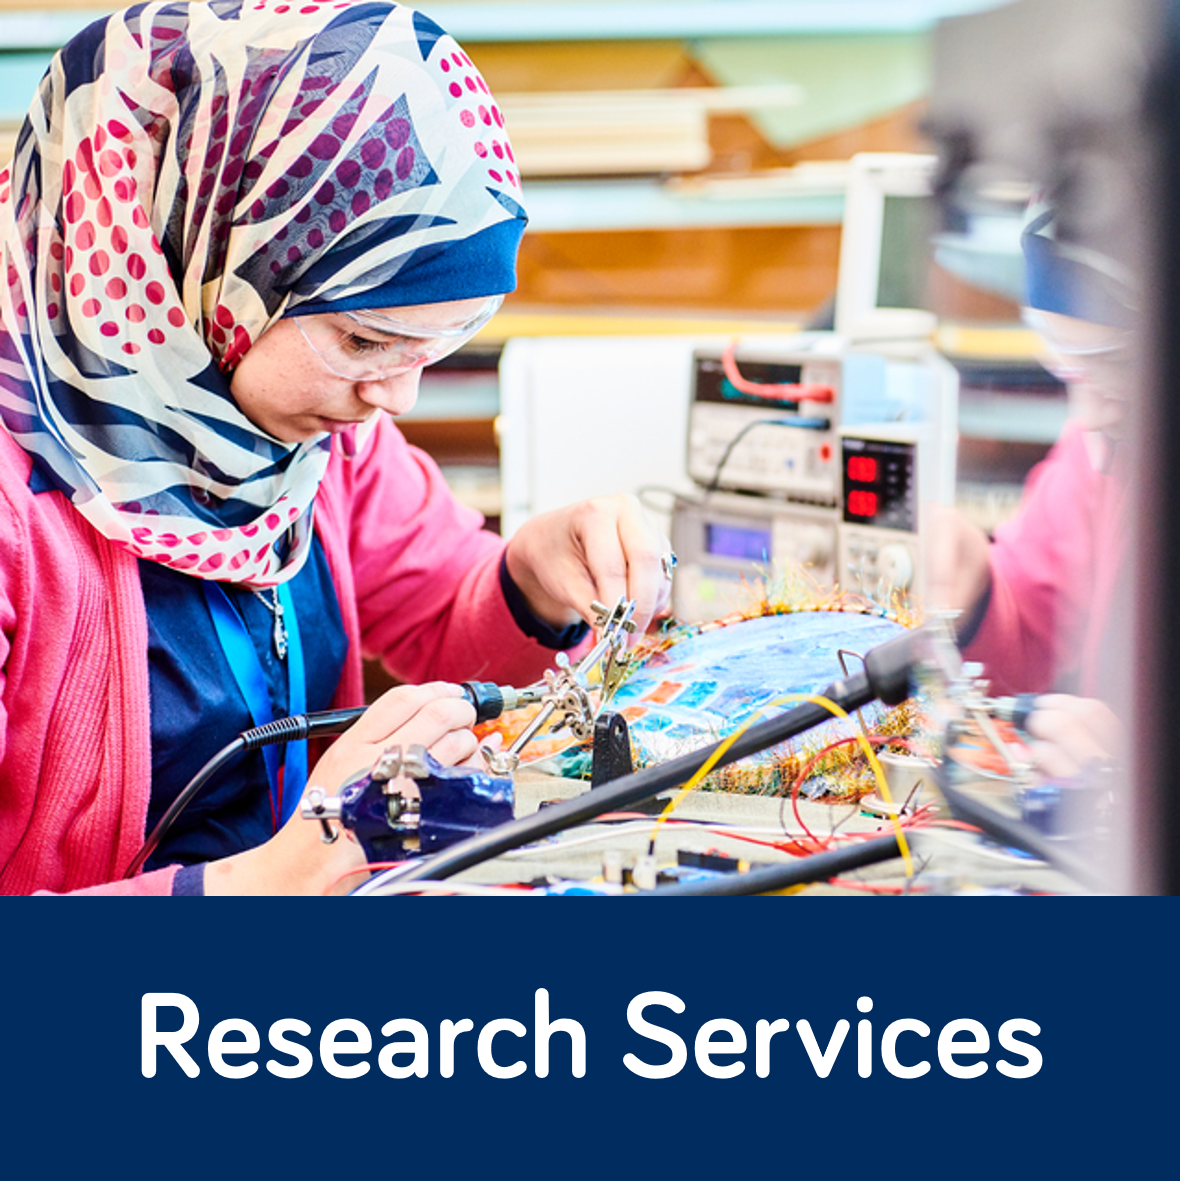 Research services image